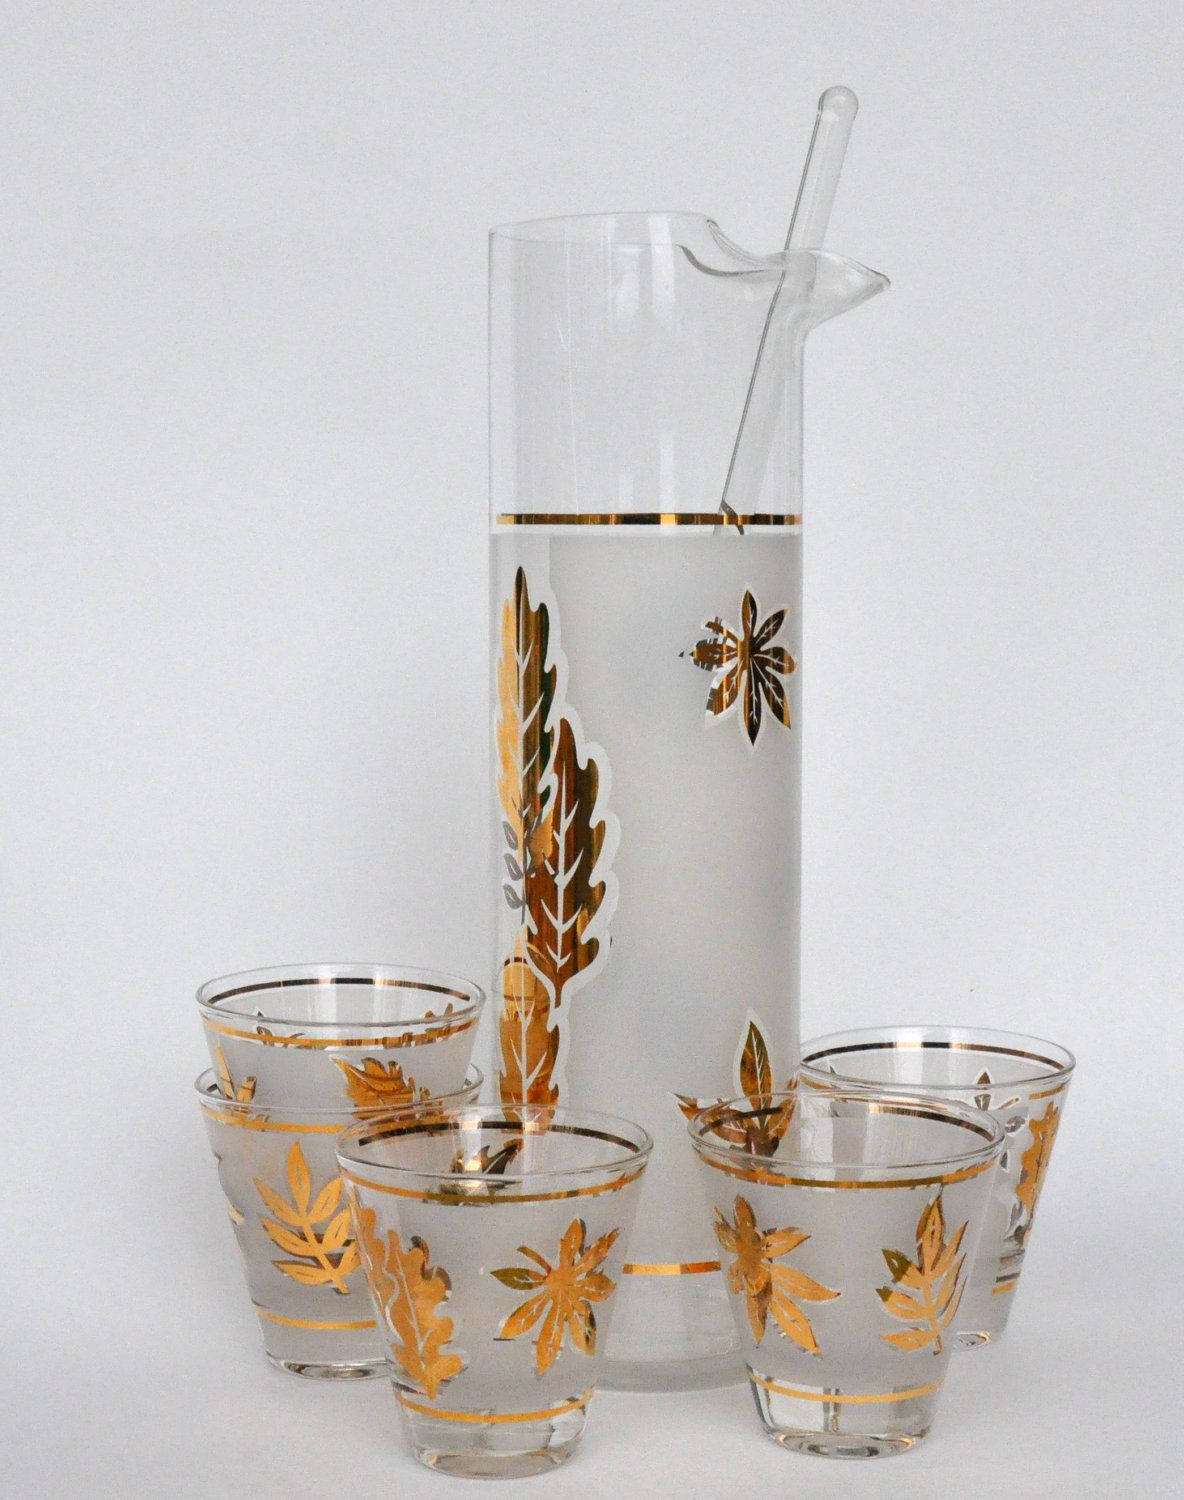 Superb Retro Barware Set $45.00